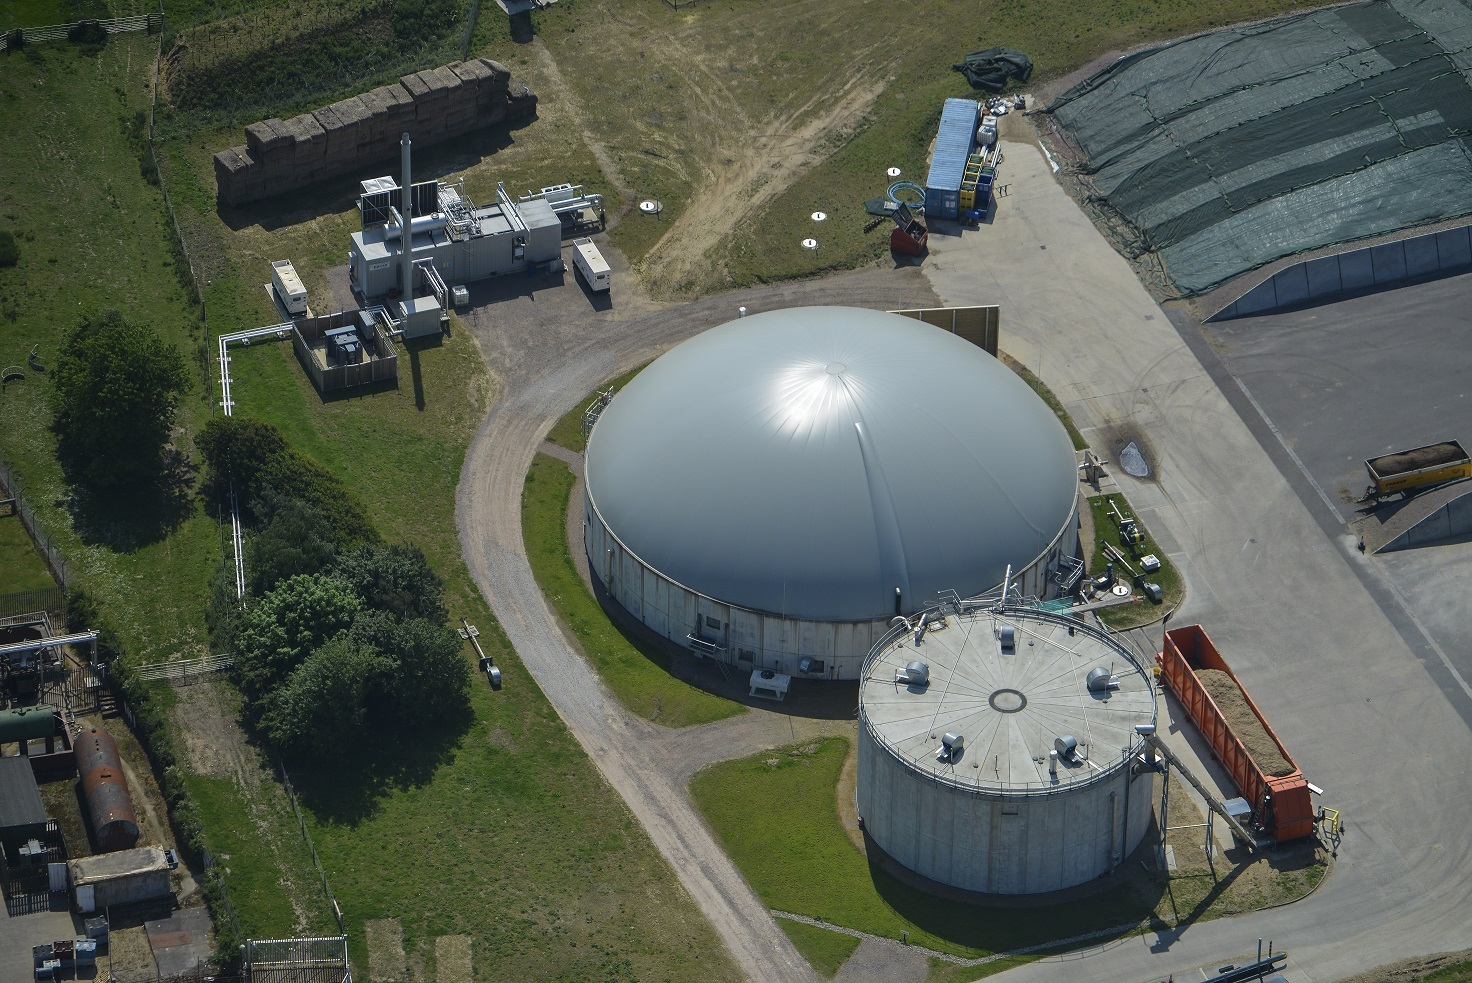 Anaerobic digestion, seen from above